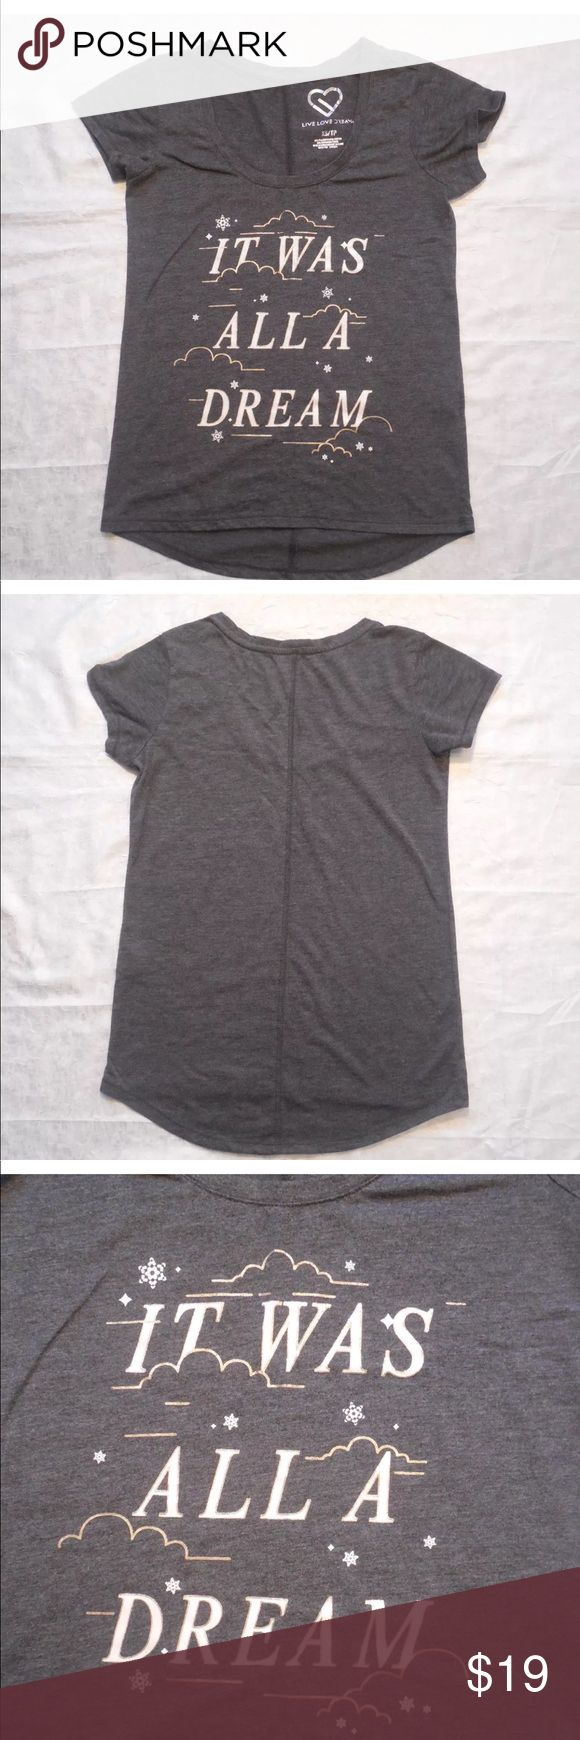 """⬇️ Aeropostale It was all a Dream XS gray tee top Pre loved Aeropostale """"It was all a Dream"""" gray tee shirt  juniors top. Size XS. Check out my closet, we have a variety of women's, Pink VS Victoria Secret, handbags  purse  Aerosoles, shoes  sandals, Gold, silver, black chocker, fashion jewelry, necklace, dresses, tops, blouse, skirts, bags, leggings, pants, makeup, Beauty & more... Fast shipper. Smoke & Pet-Free.  Don't forget to bundle & save! Offers 30% OFF discount. Always a FREE GIFT…"""